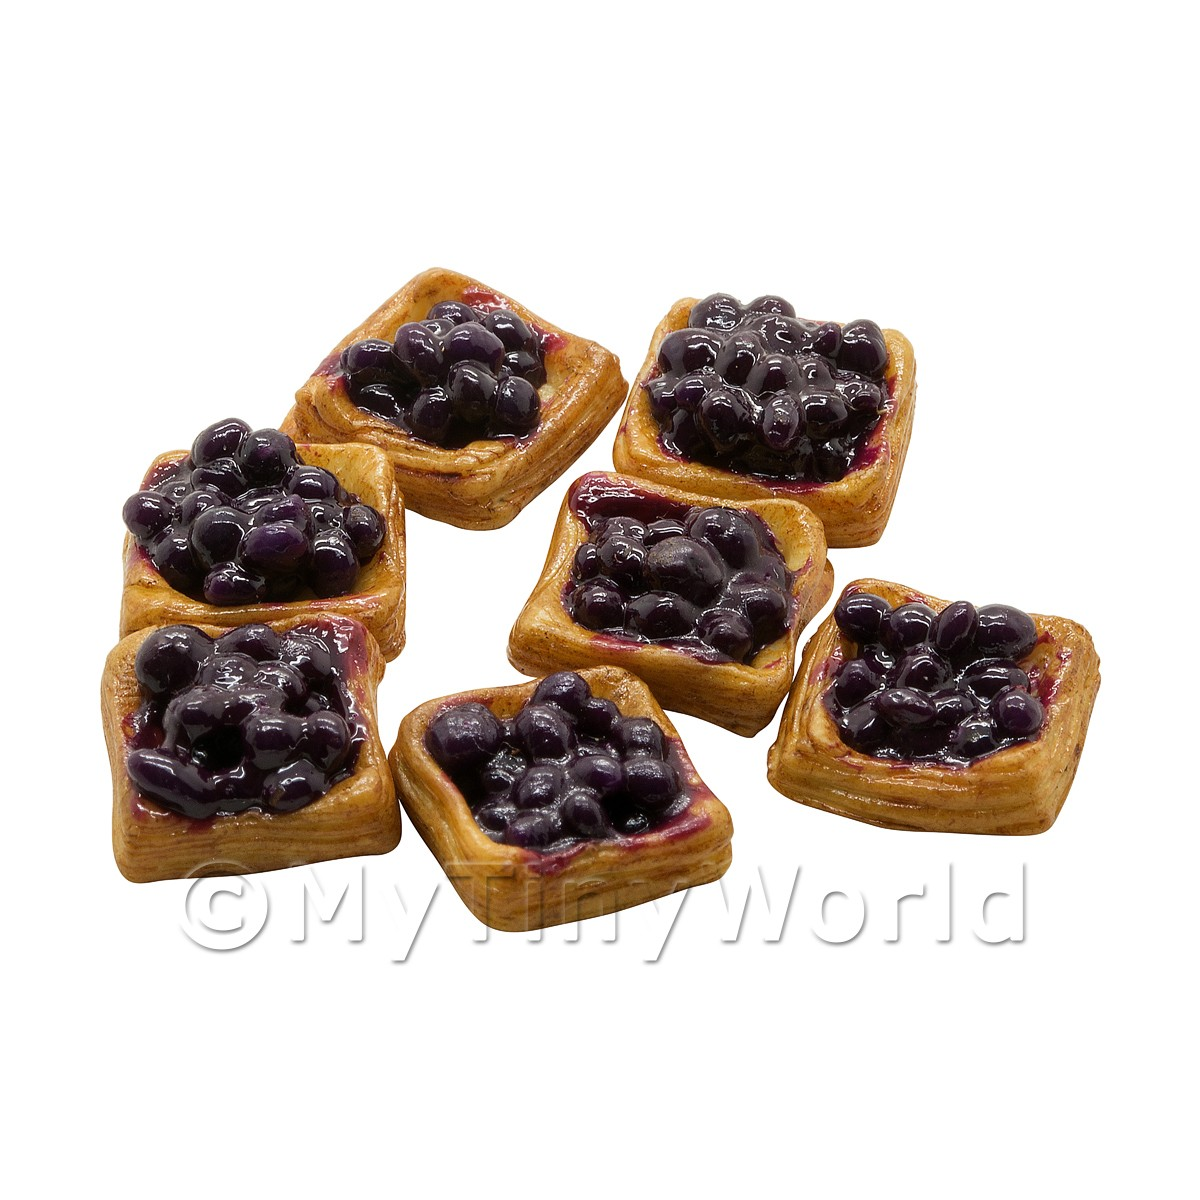 Square Puff Pastry Topped With Berries